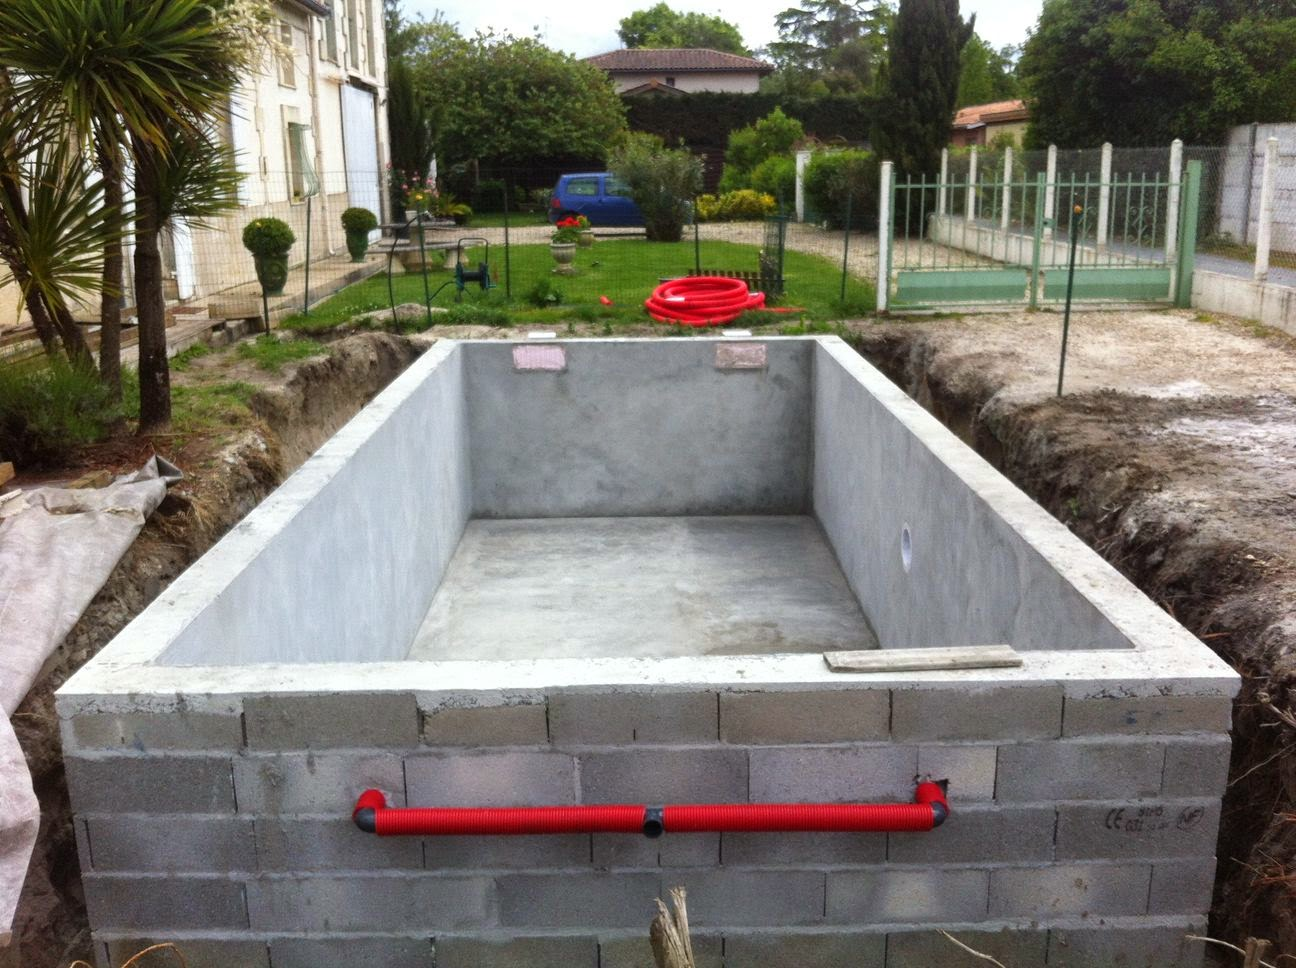 Projet tapes de construction d 39 une piscine en for Construction piscine 56